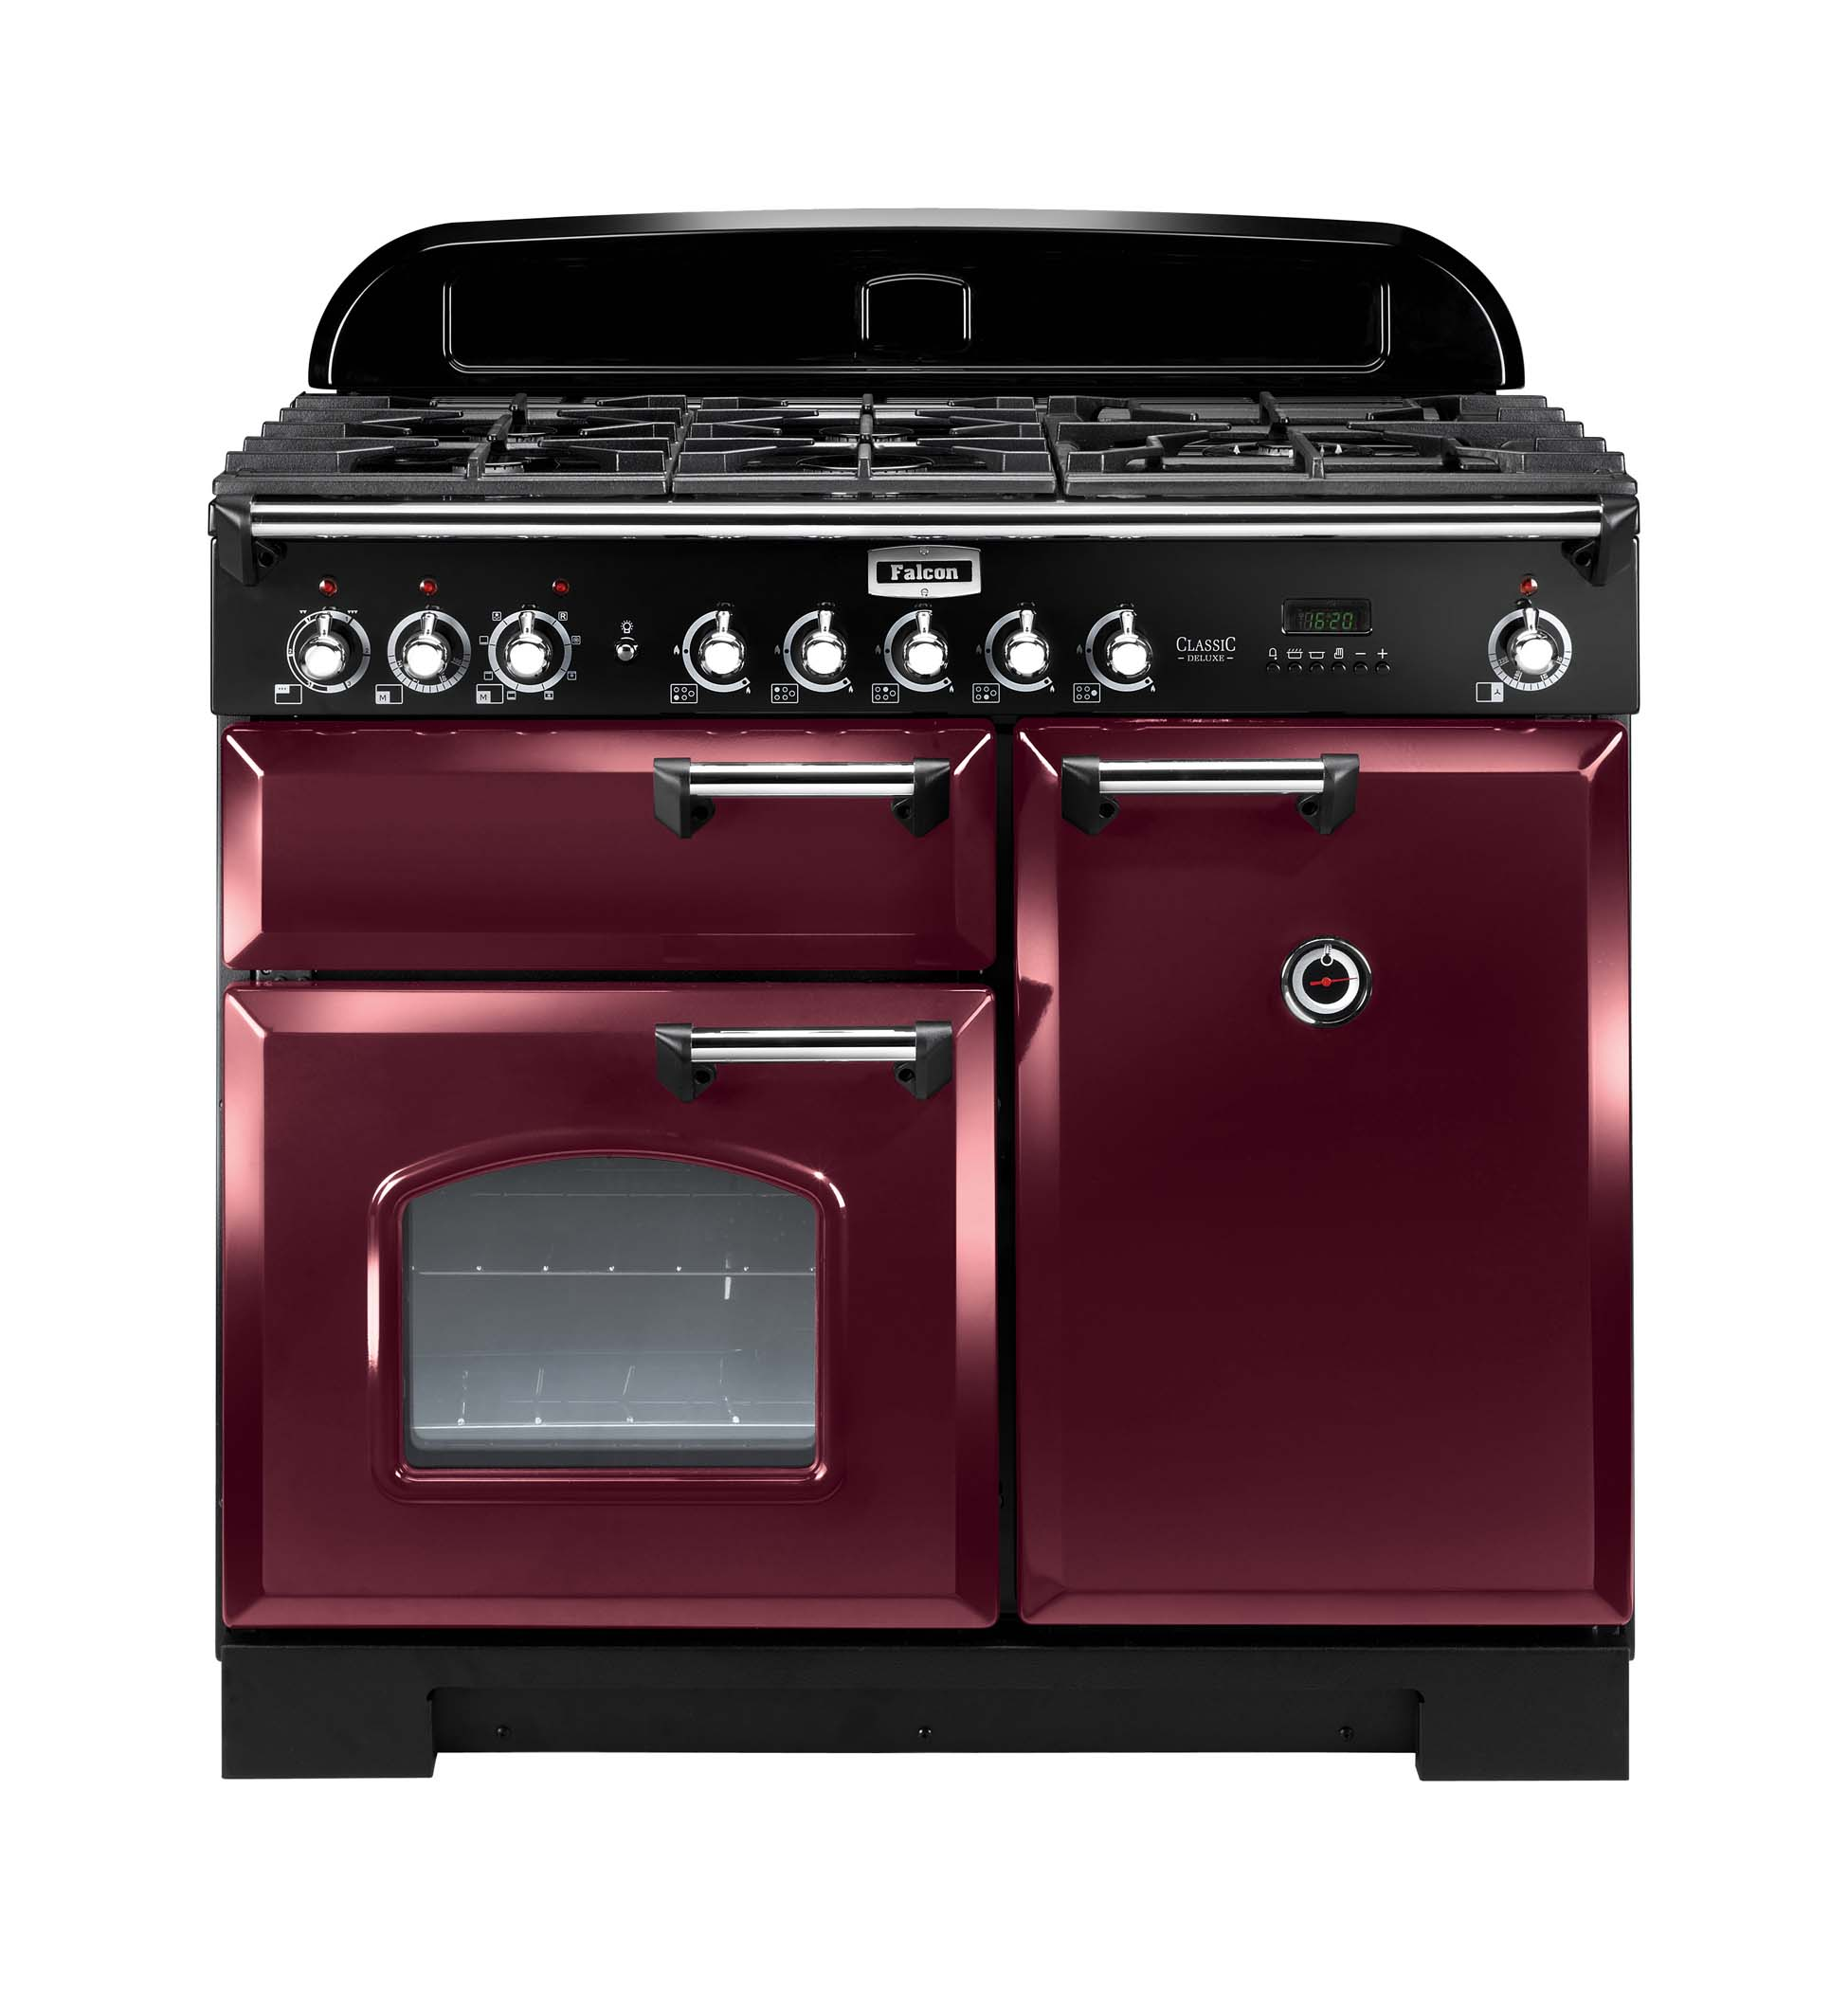 Falcon Classic Deluxe 100cm Standherd Welter Welter Koln